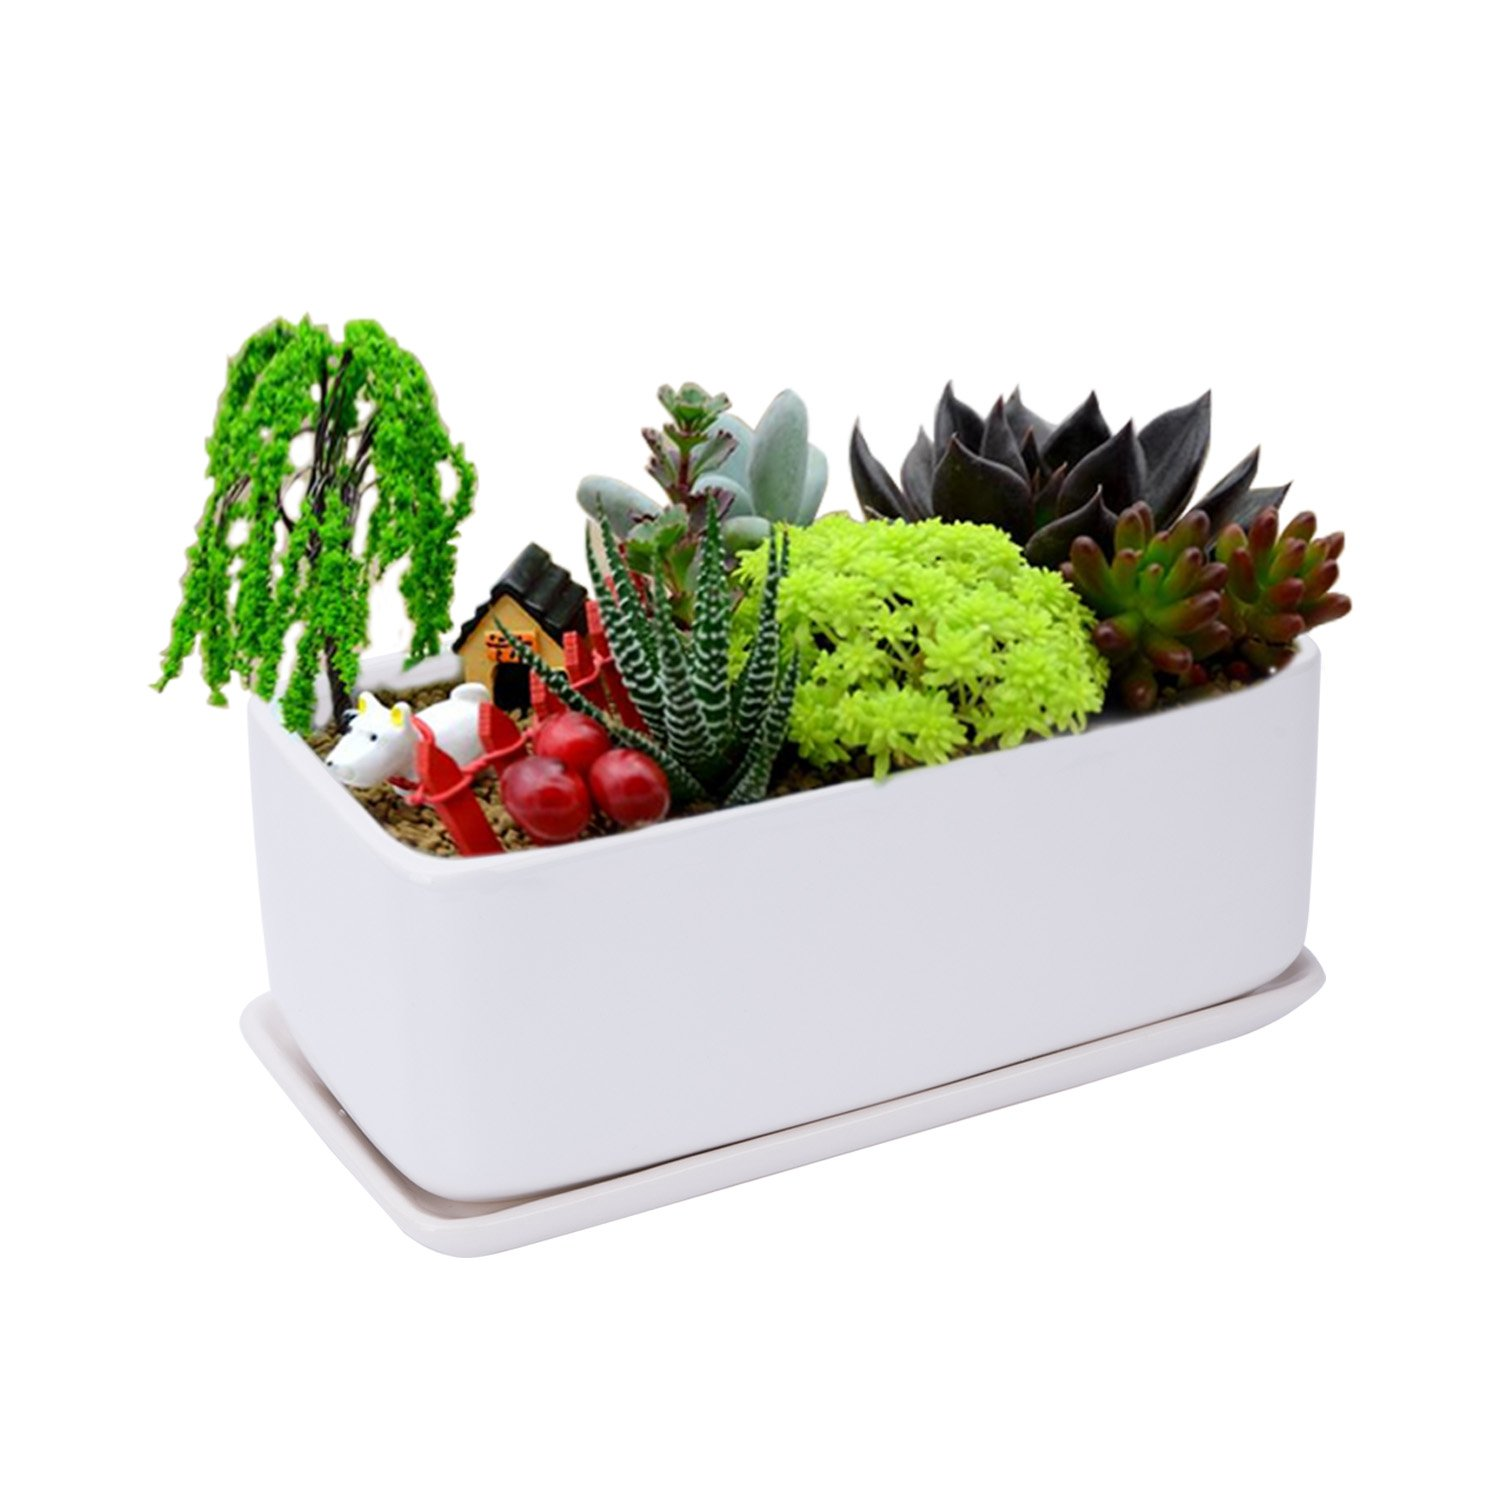 Vencer 12 Inch Large Capacity Modern Minimalist Ceramic Succulent Planter Pot - Window Box with Saucer,Office Desktop Potted Stand,White,VF-063 by Vencer